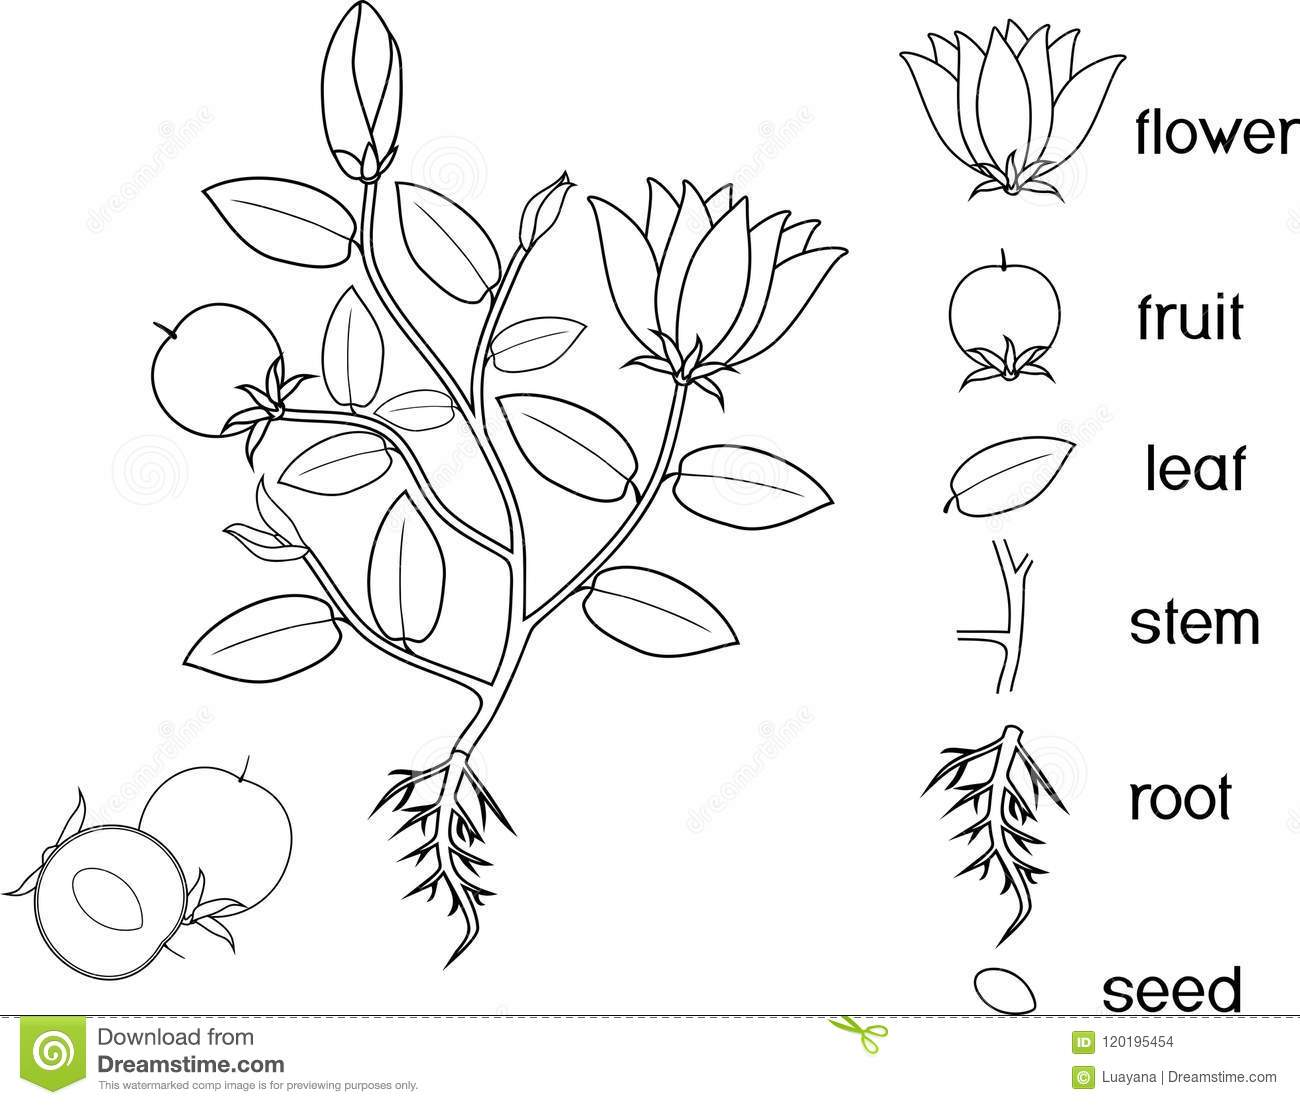 Coloring Page. Parts Of Plant. Morphology Of Flowering Plant ...